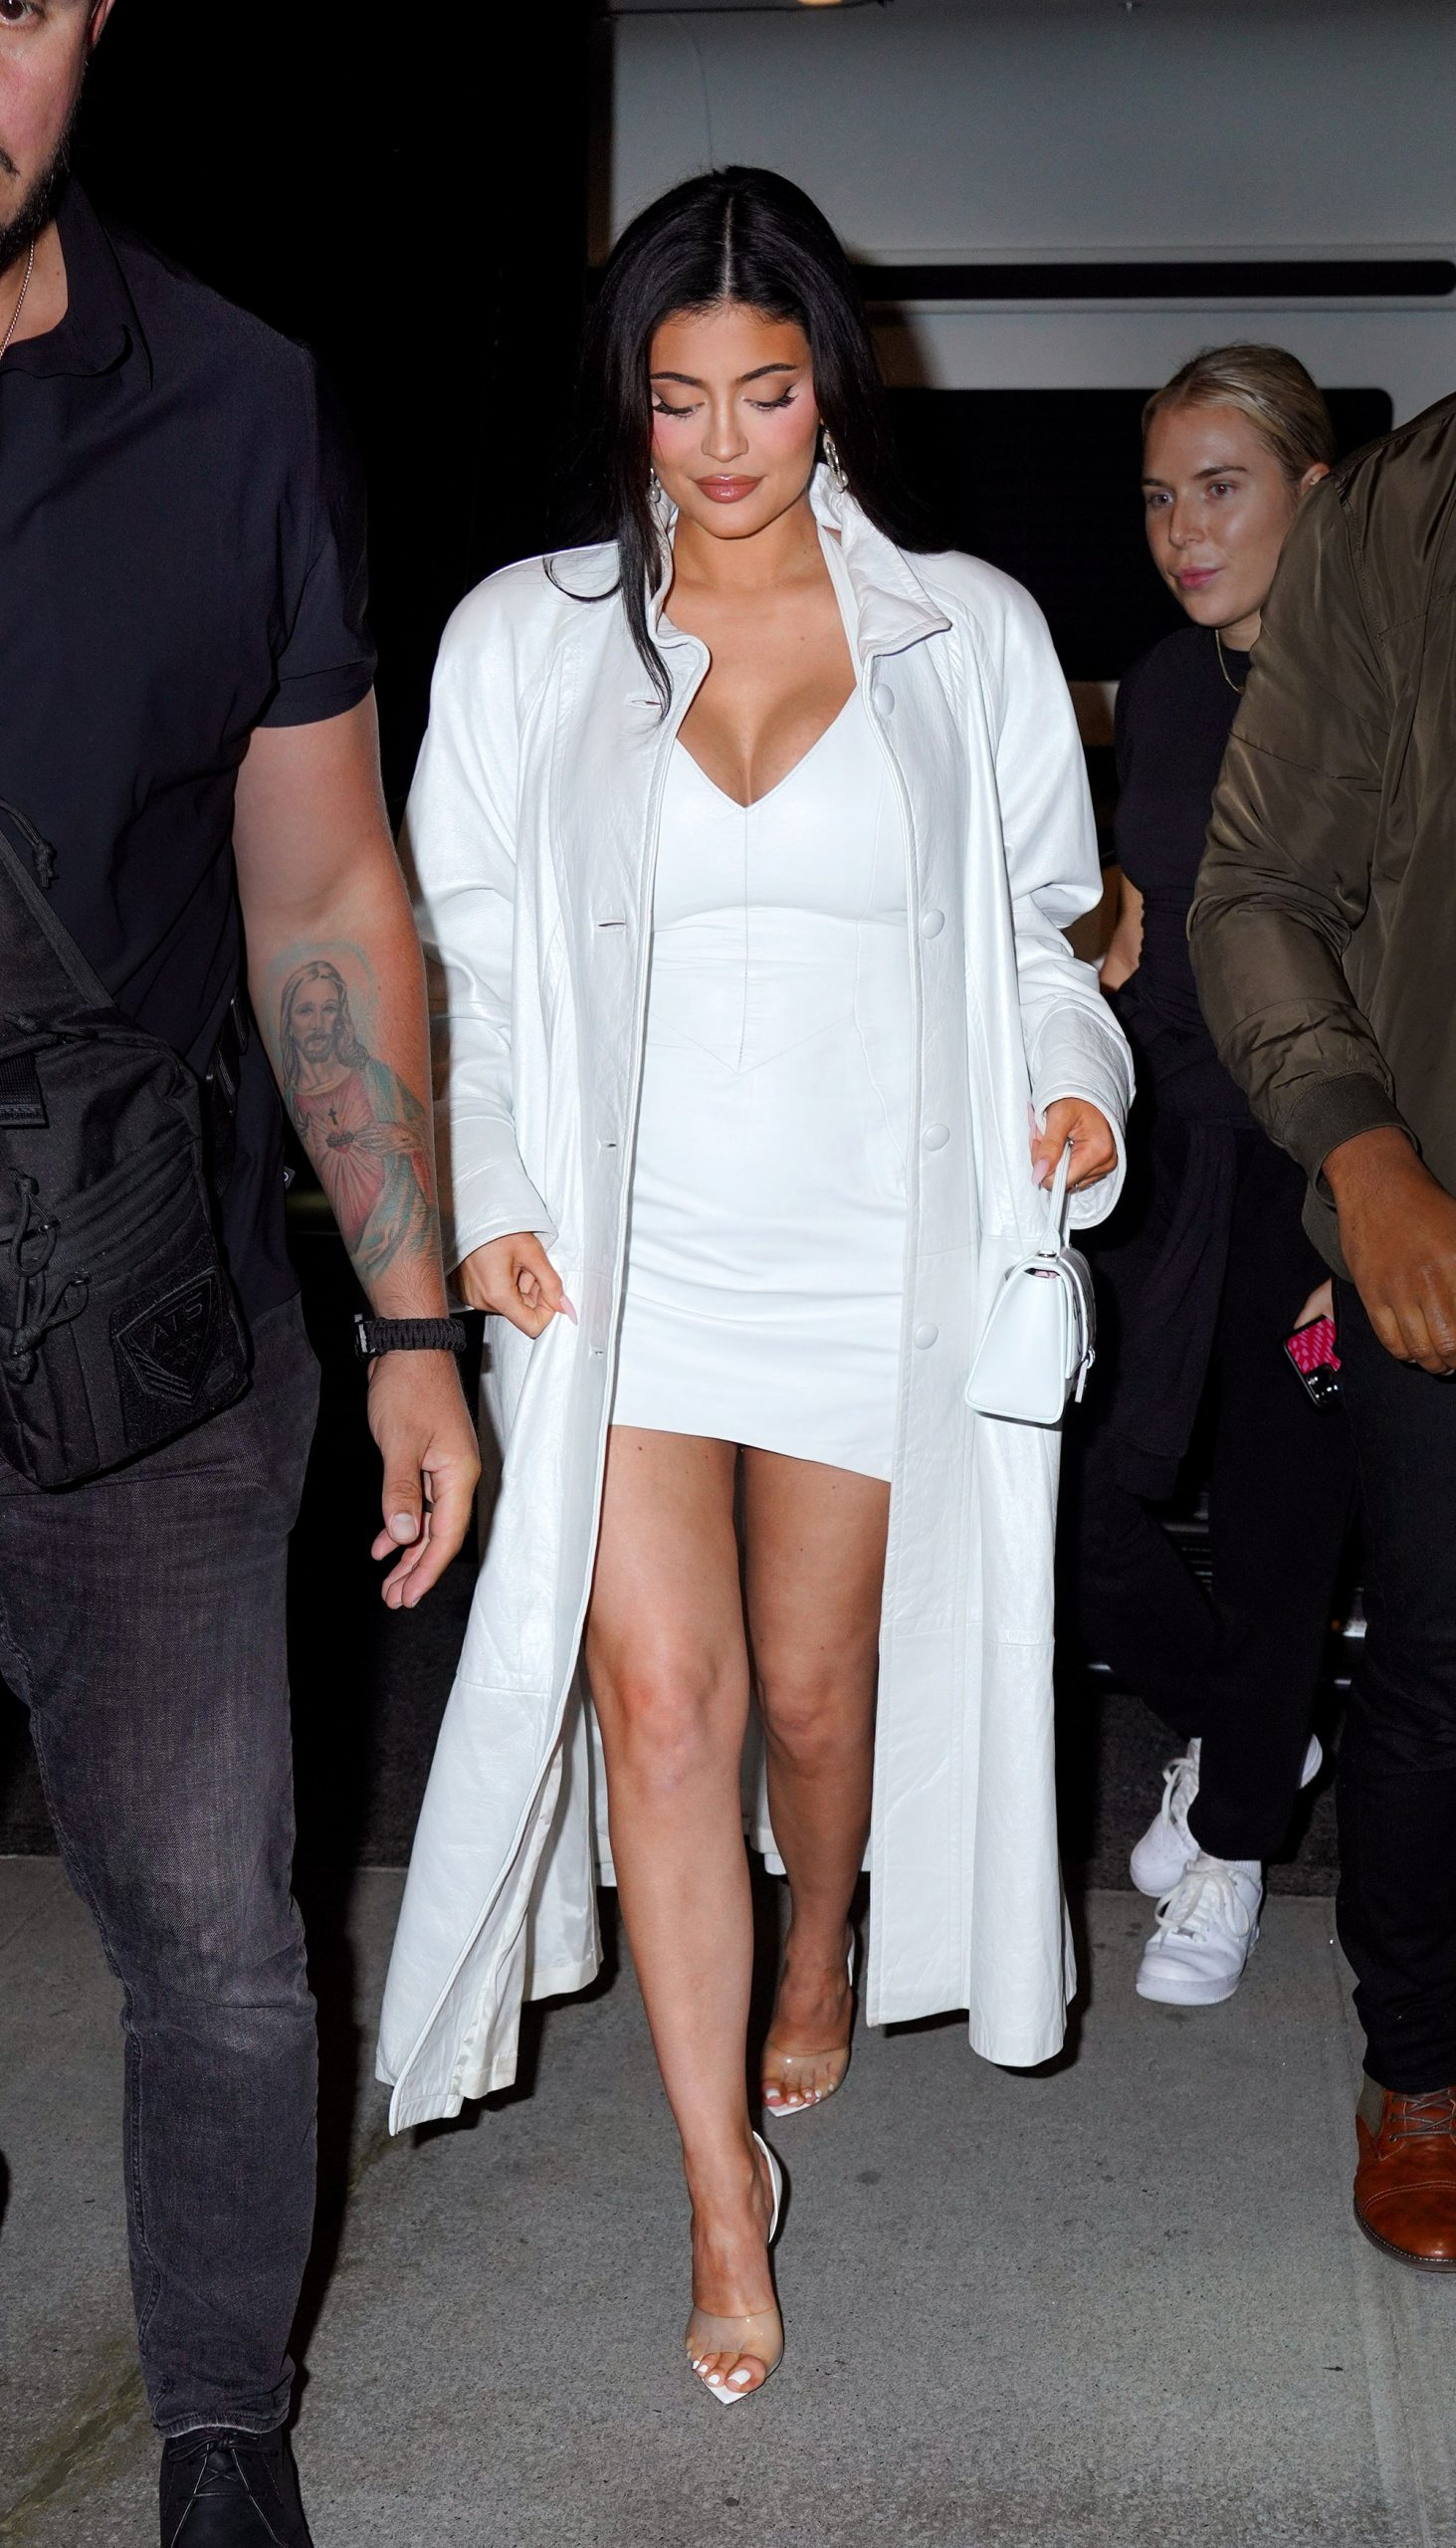 Kylie Jenner NYFW: Debuts Her Baby Bump At New York Fashion Week